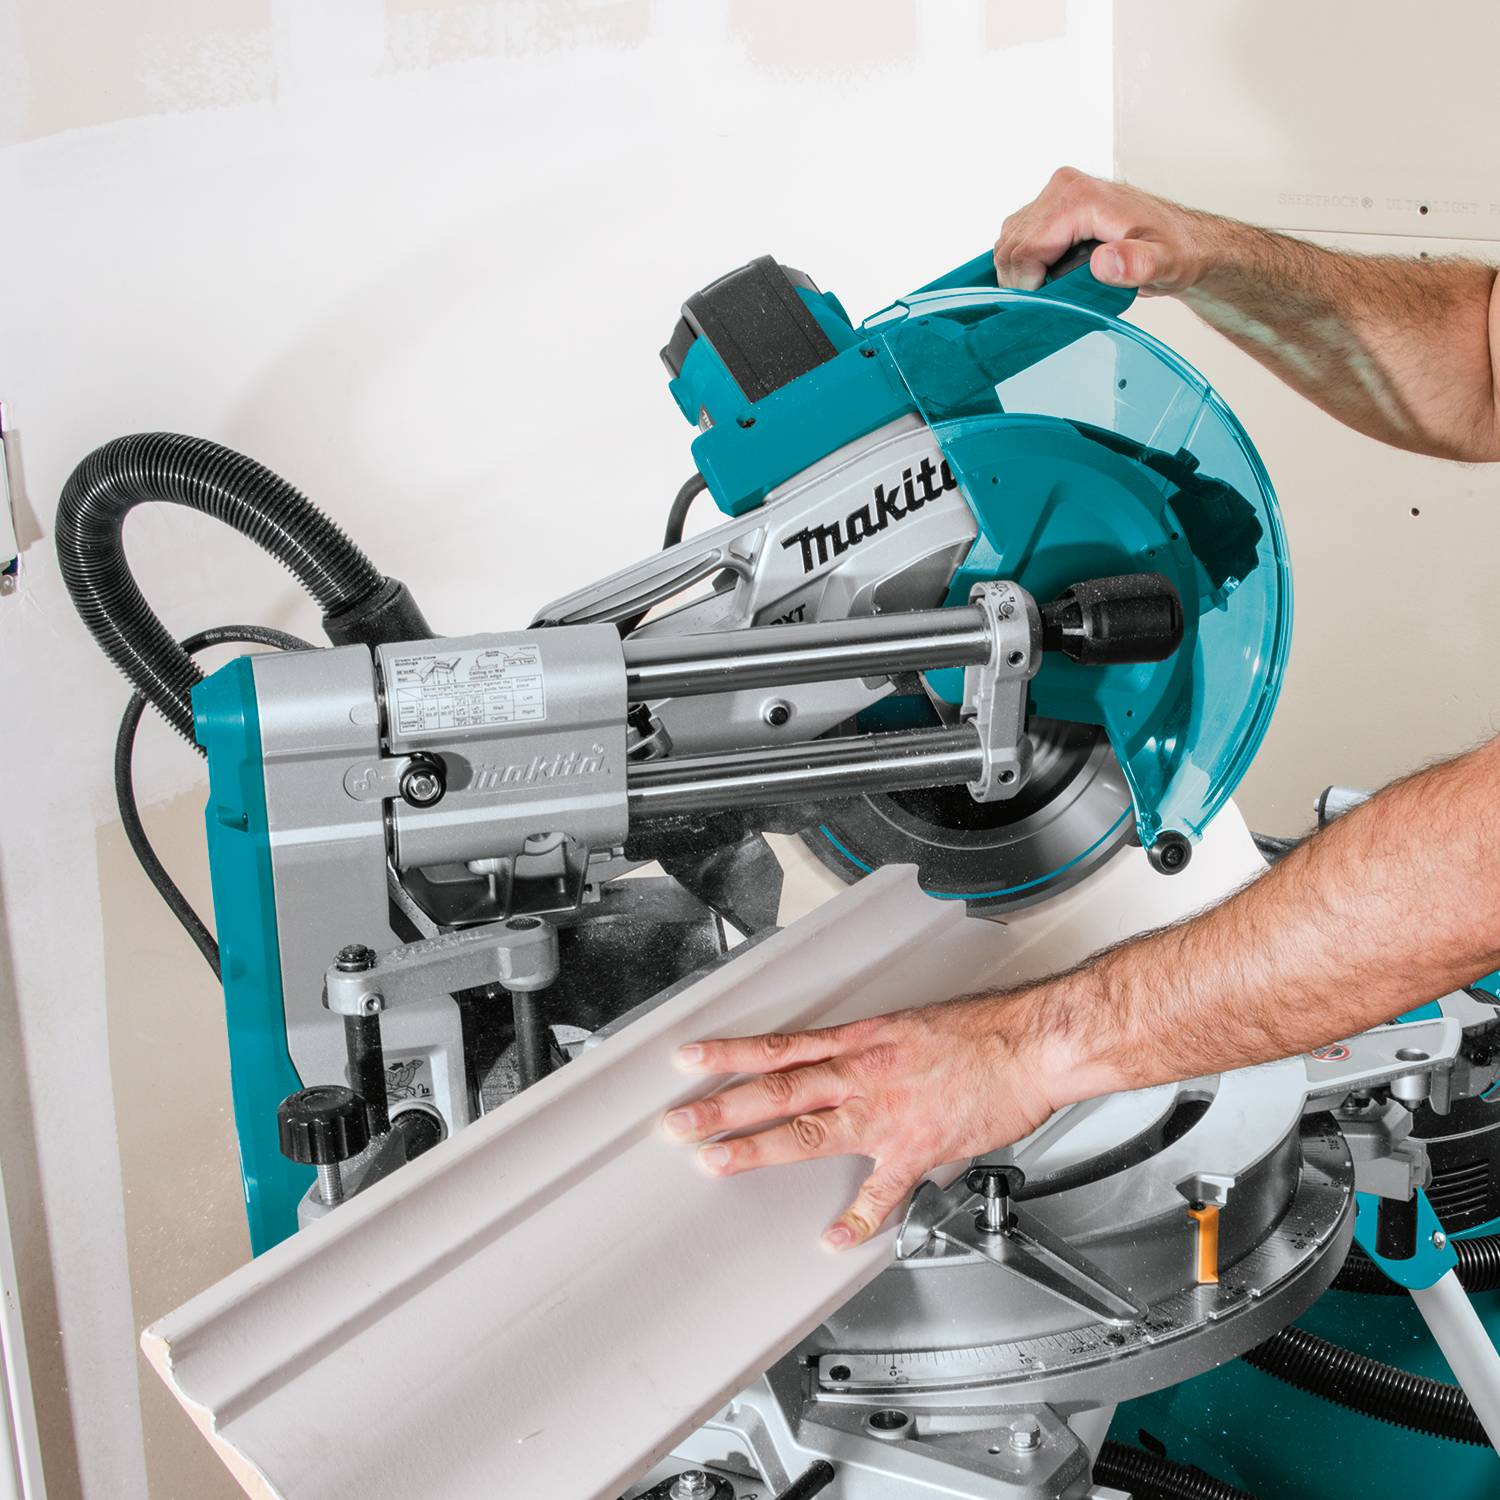 Makita LS1019L Revew: Pros Cons, Parts List, Read This First